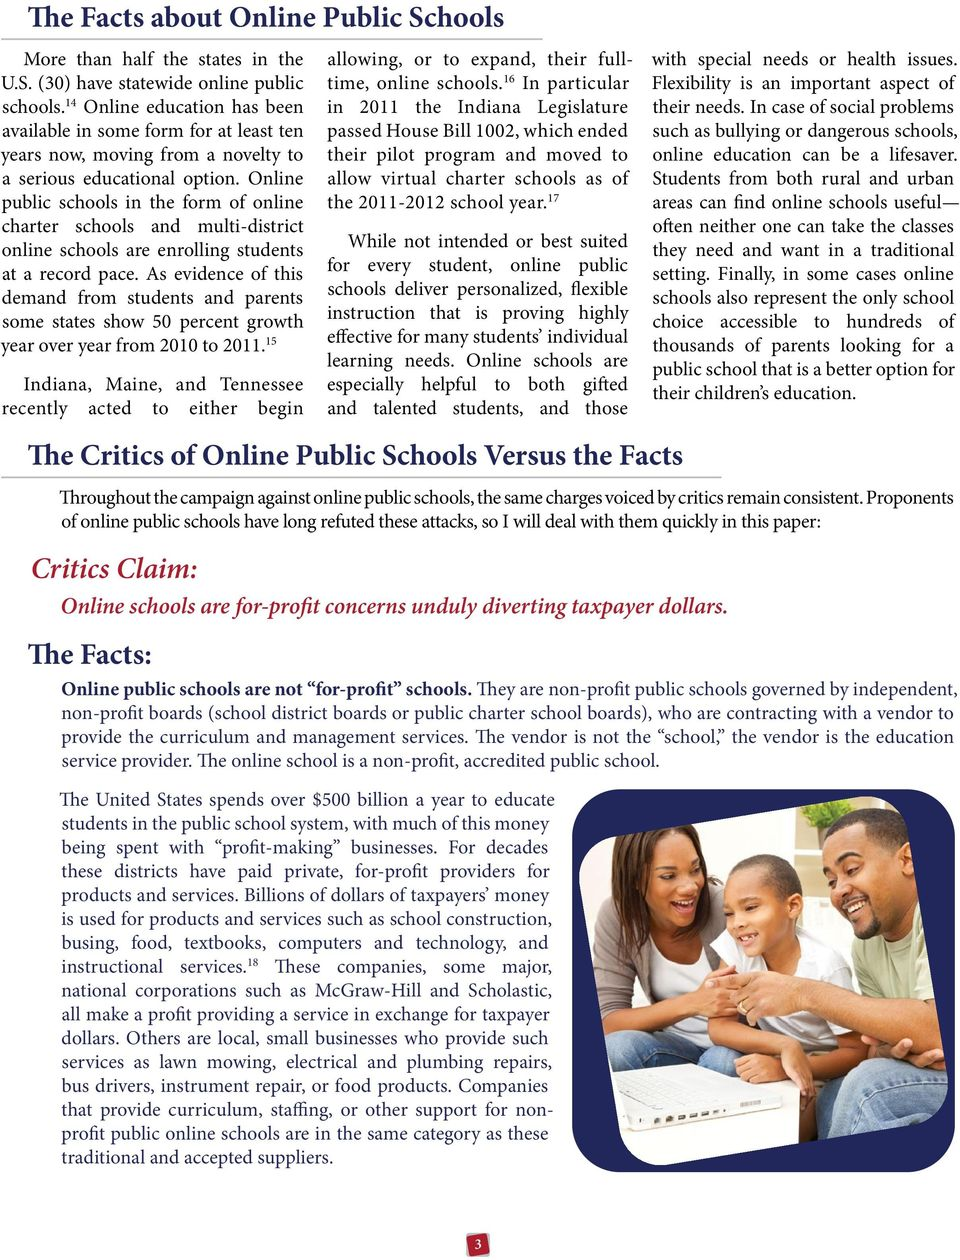 Online public schools in the form of online charter schools and multi-district online schools are enrolling students at a record pace.